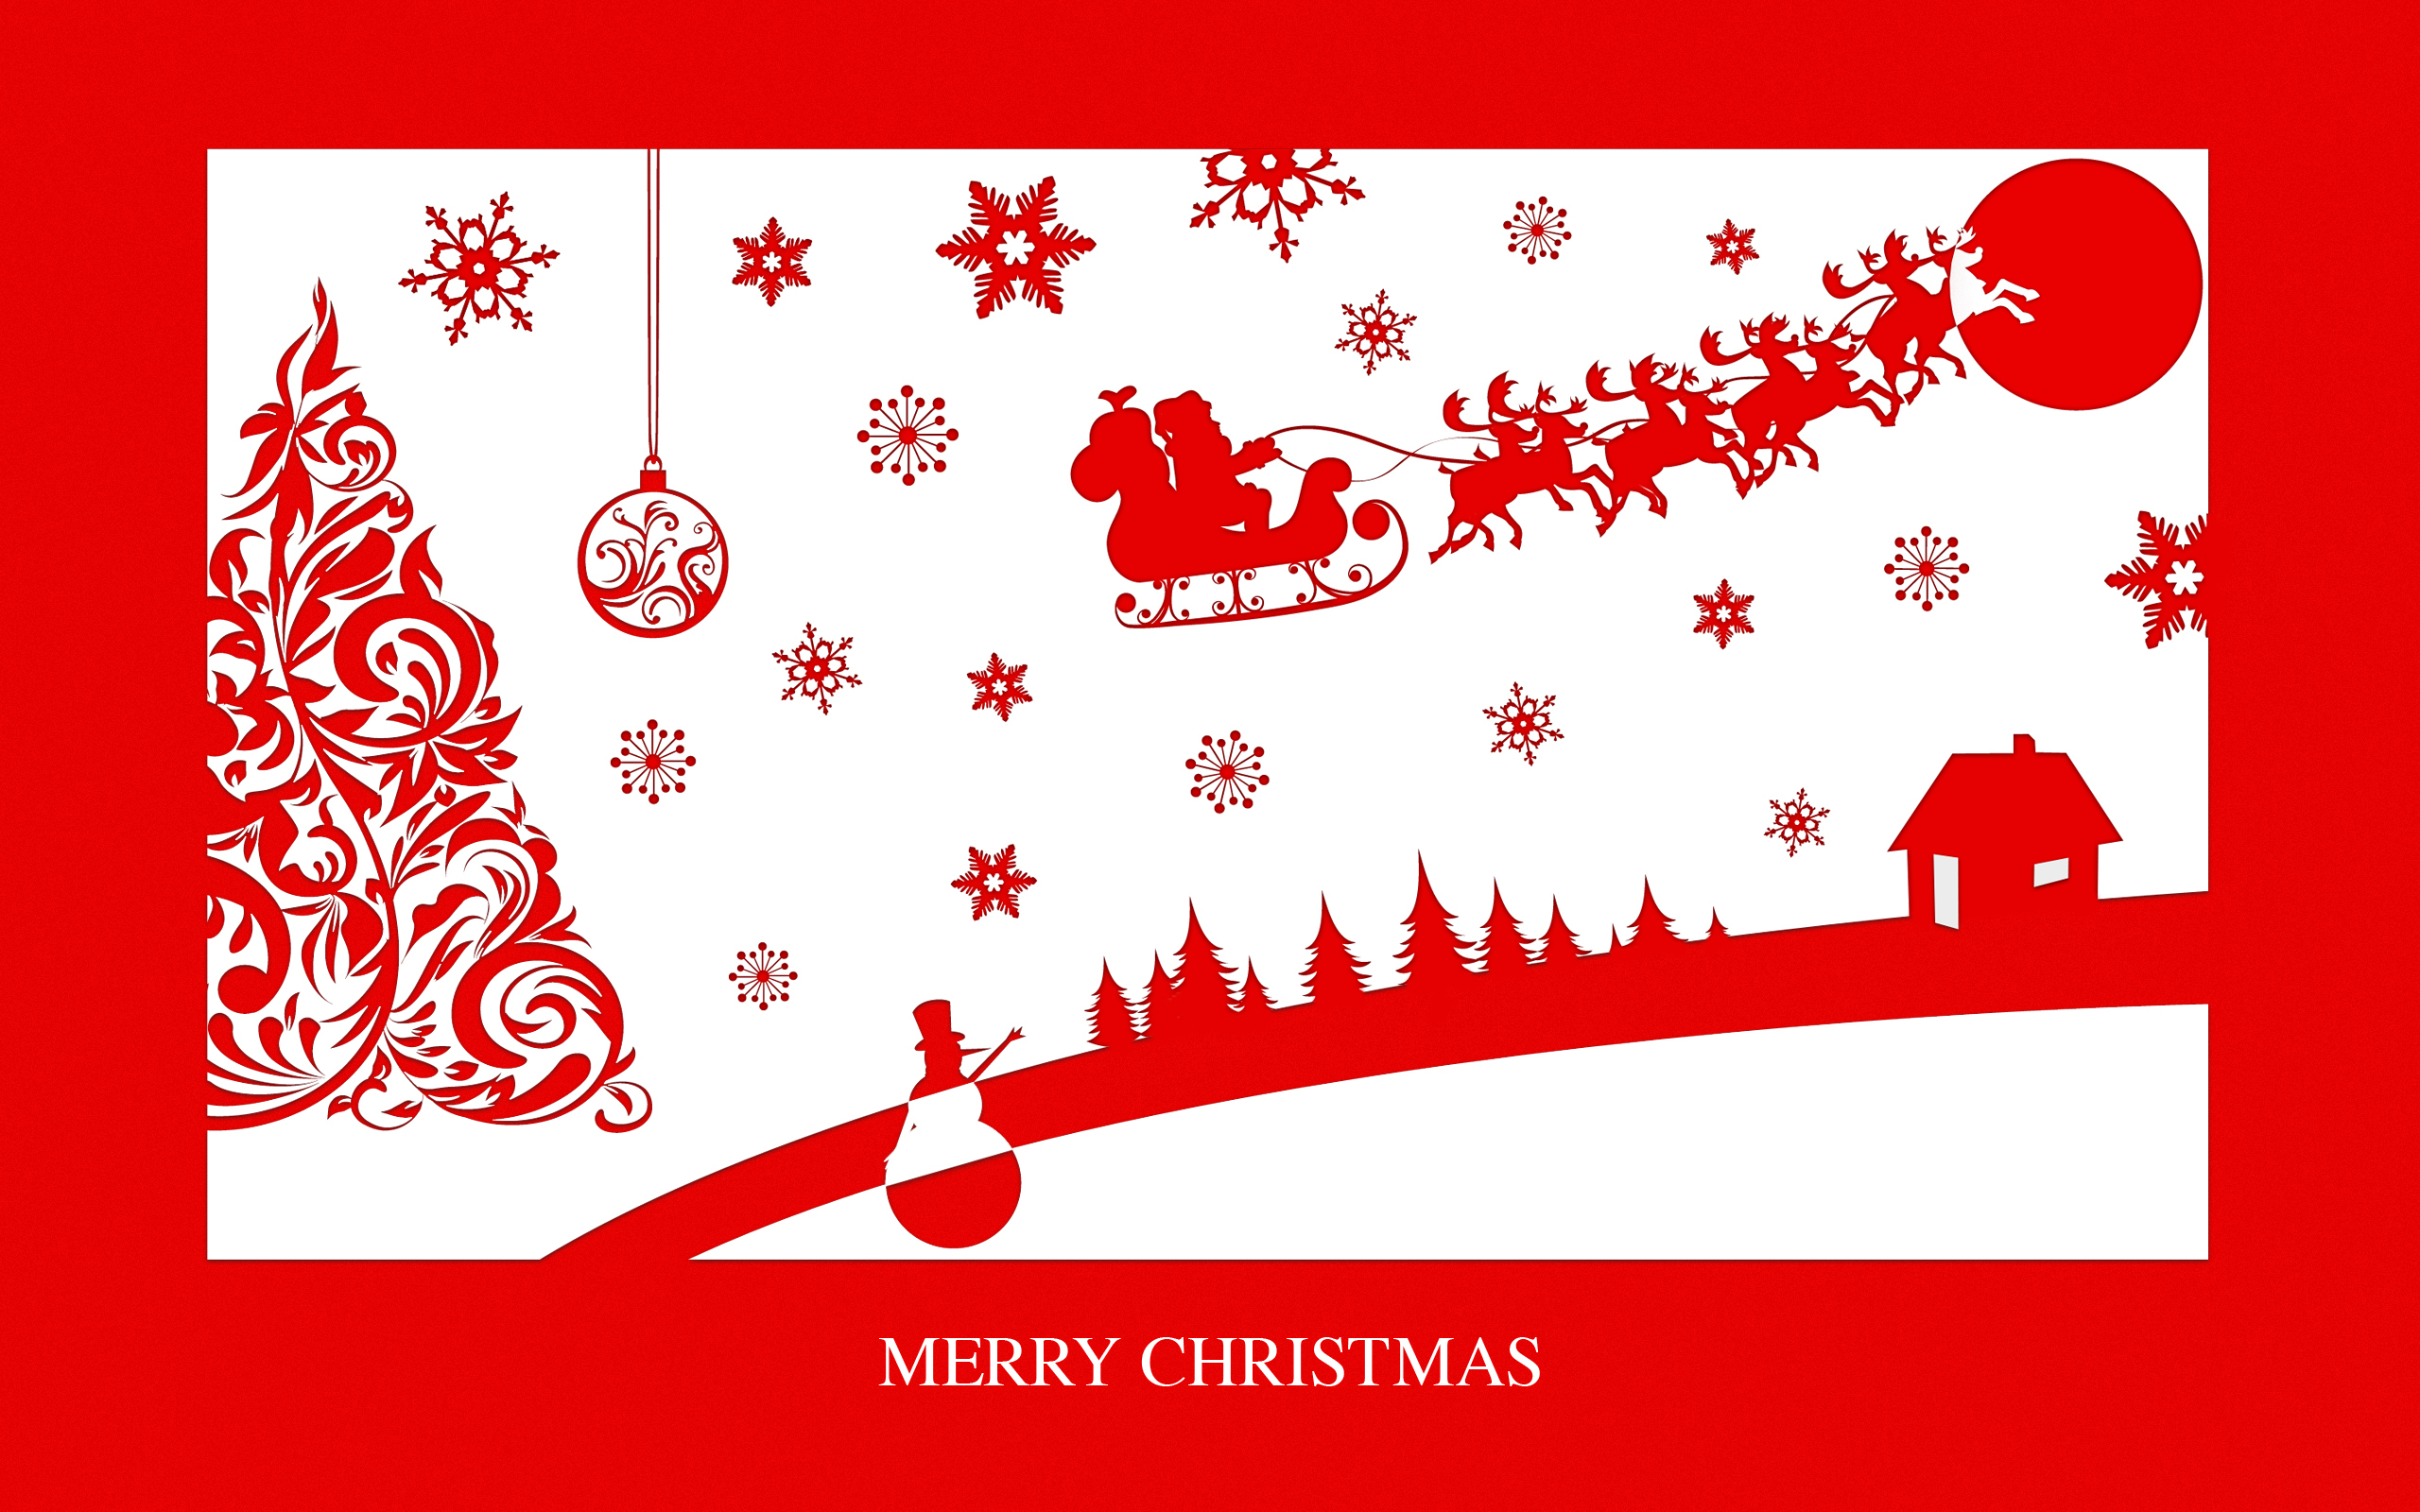 Merry Christmas, Clipart PPT Backgrounds